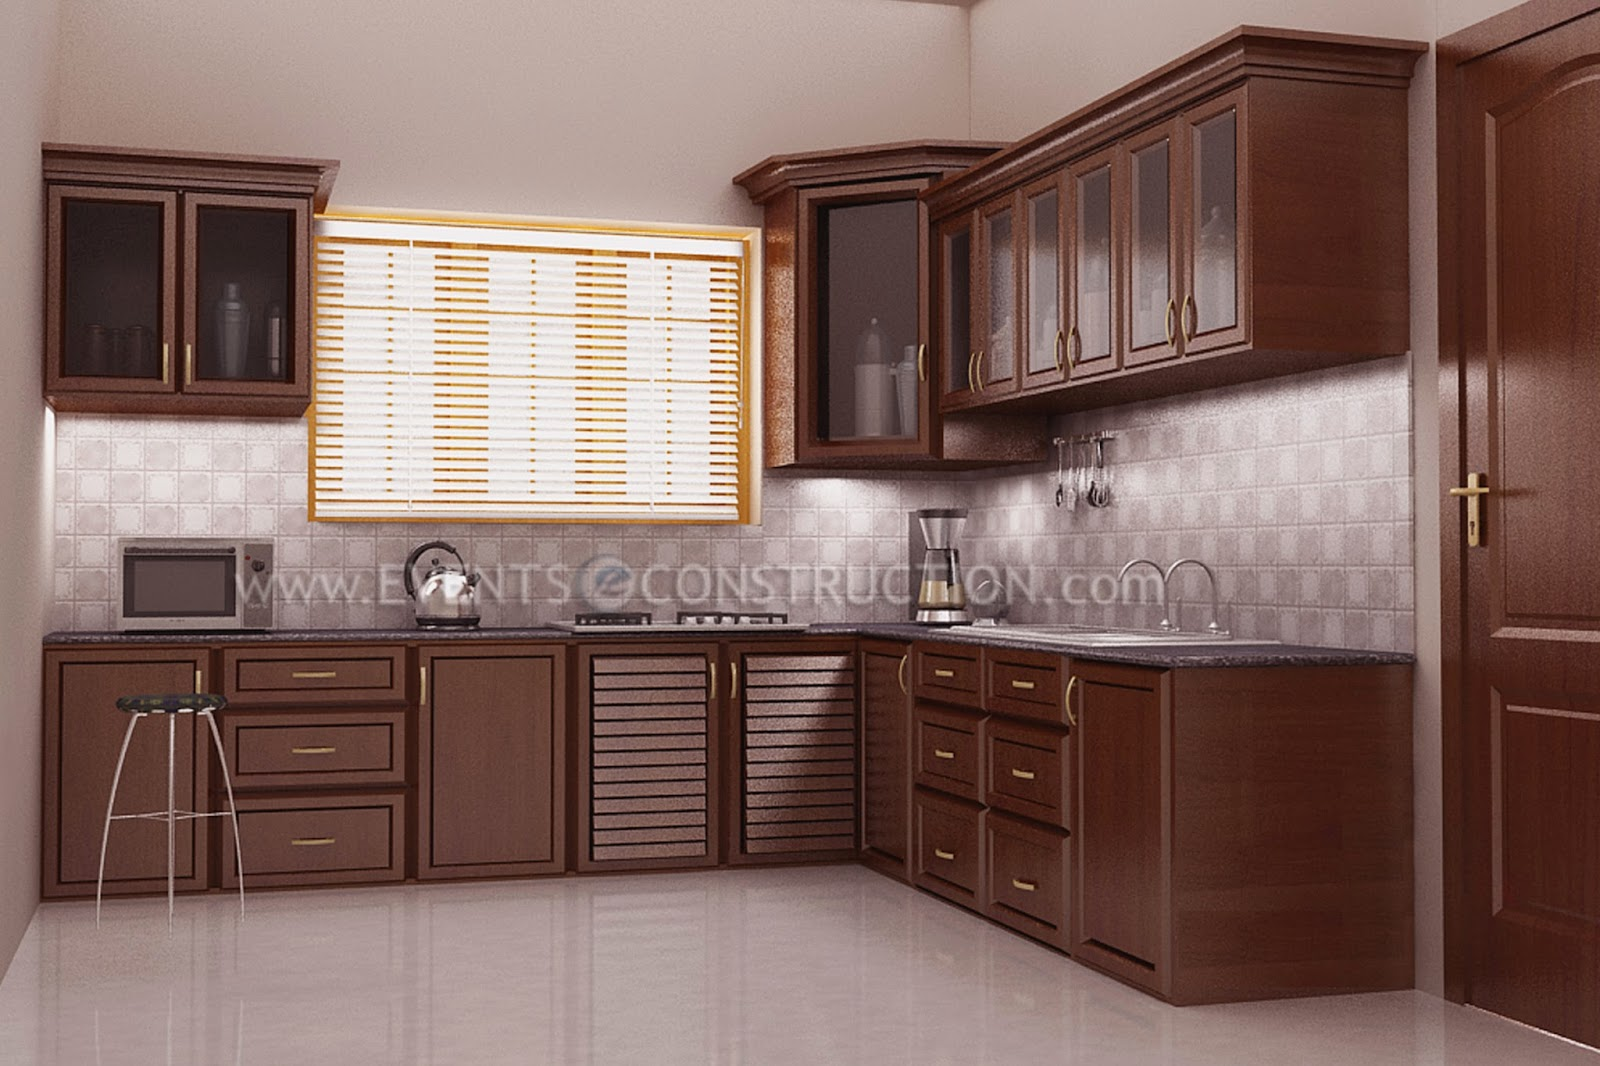 Evens construction pvt ltd kitchen design with wooden for House kitchen cabinets